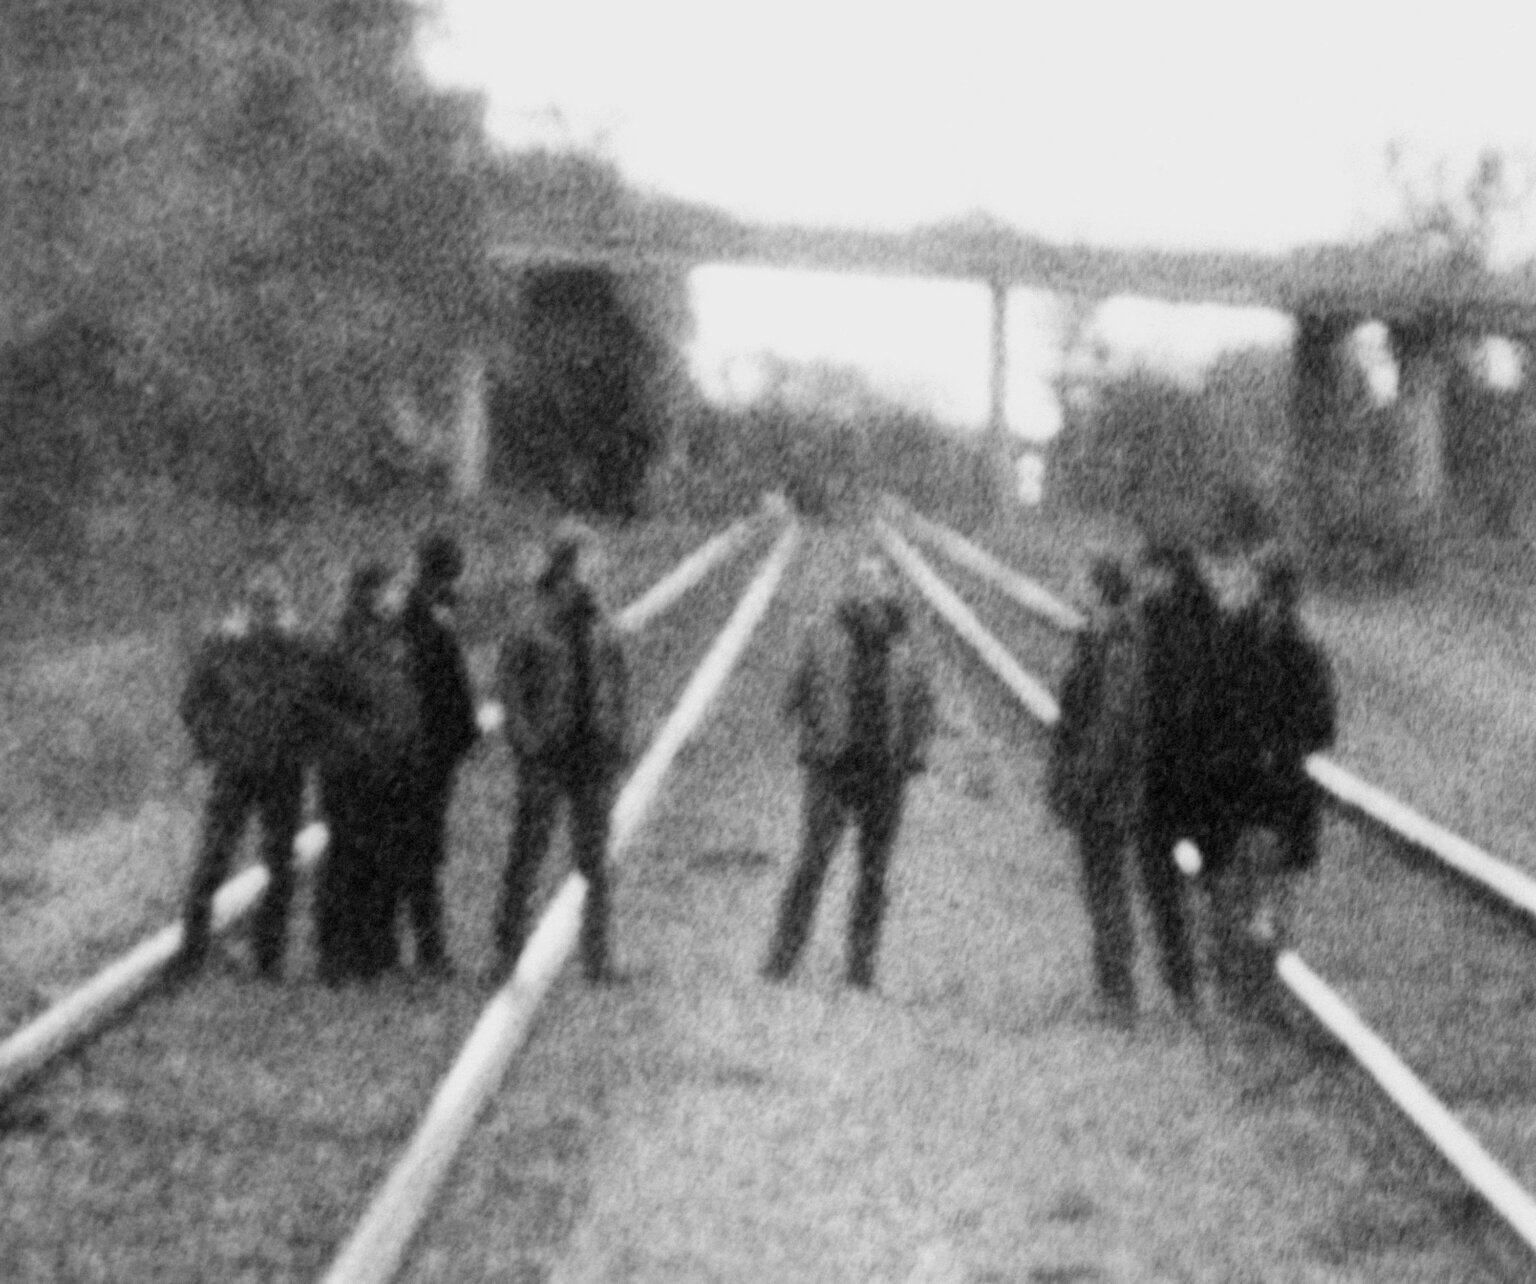 Godspeed You! Black Emperor announce new album G_d's Pee AT STATE'S END! The LP comes out on April 2, 2021 via Constellation Records